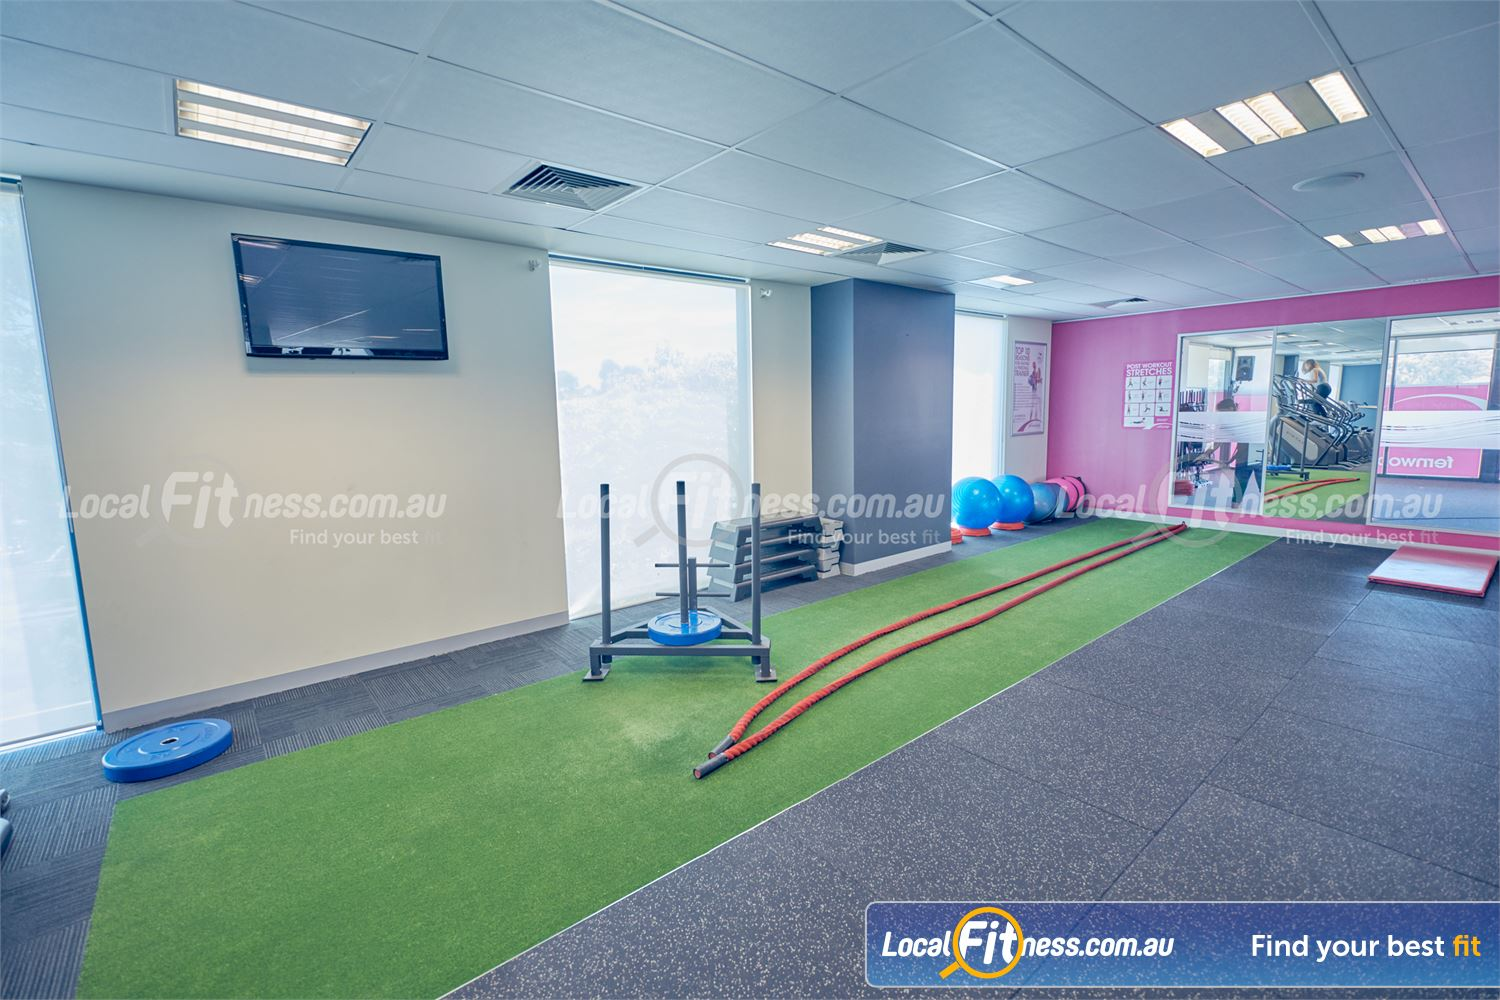 Fernwood Fitness Near Derrimut The dedicated functional training area with indoor sled track.